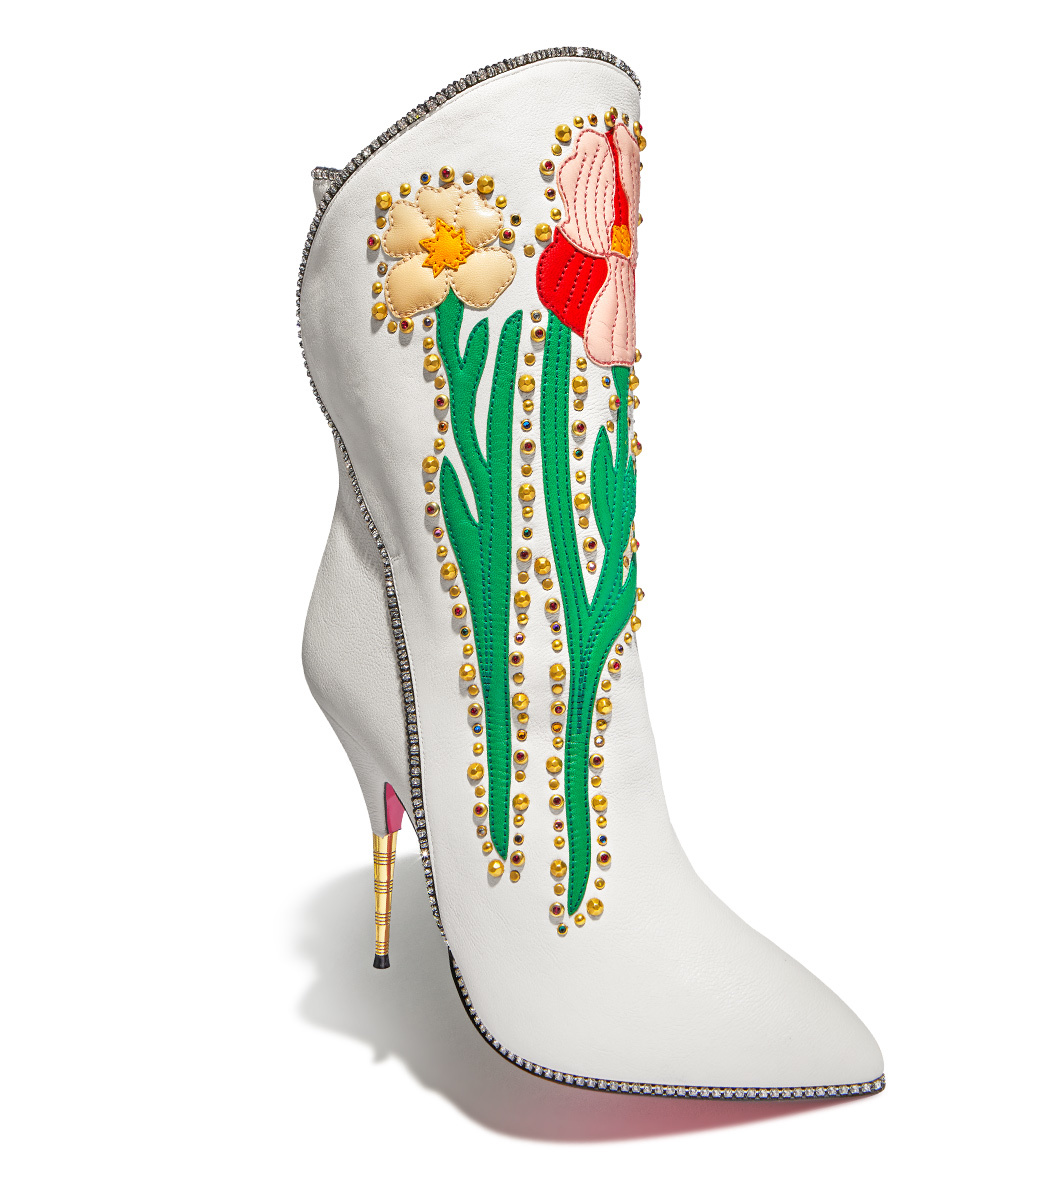 Fosca Appliquéd Embellished Textured-Leather Ankle Boots, White